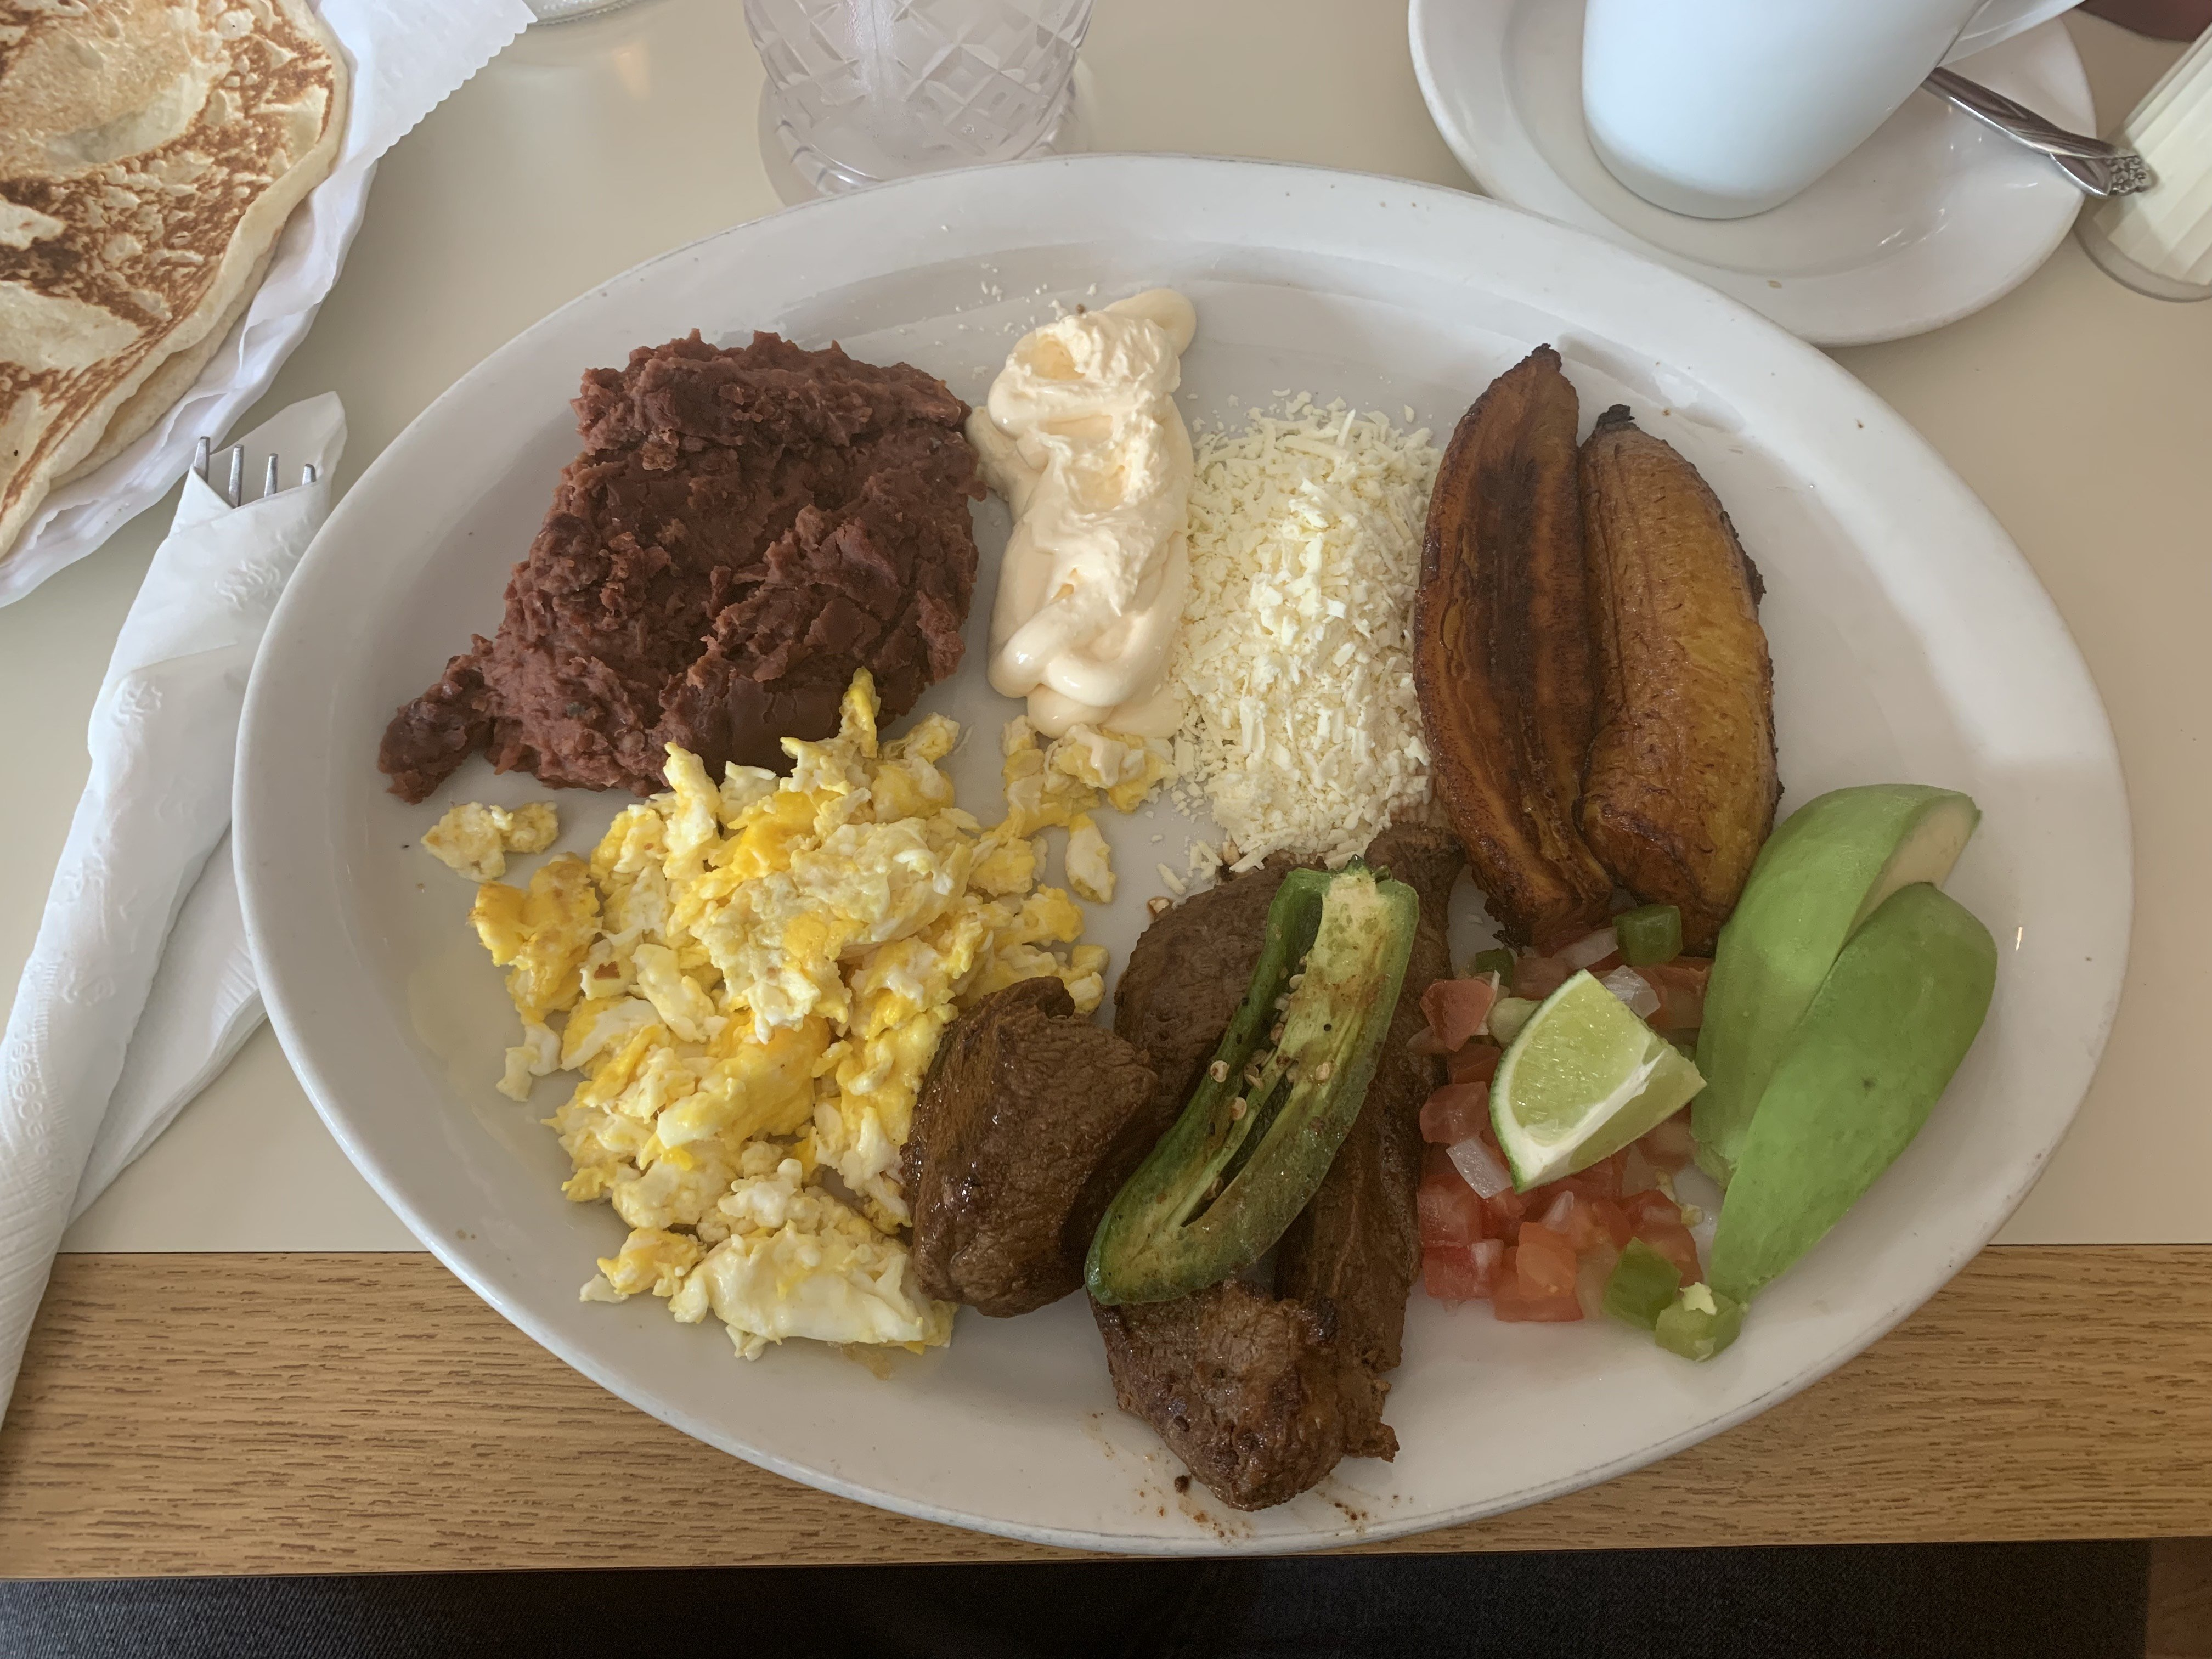 The desayuno tipico features meat, eggs, beans, plantains, pico de gallo, cheese, and avocado. It is served with a tortilla.